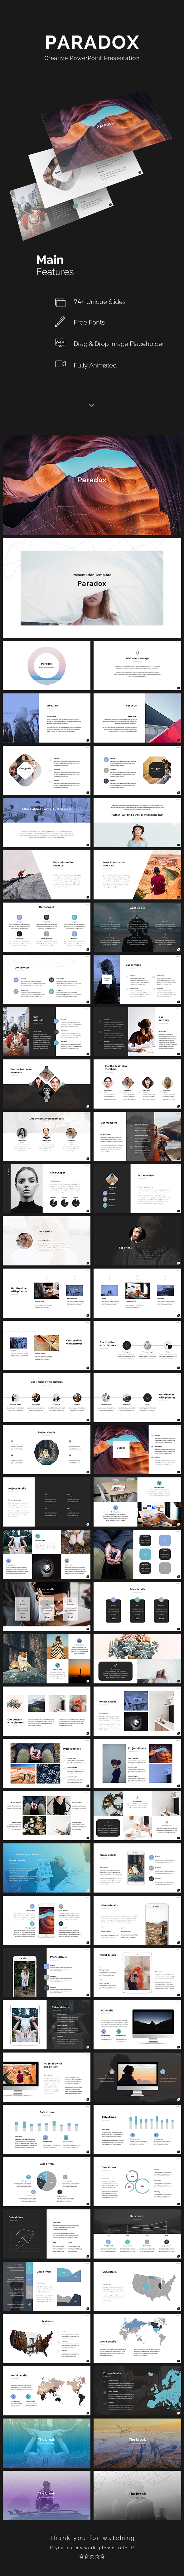 Paradox PowerPoint Template - PowerPoint Templates Presentation Templates